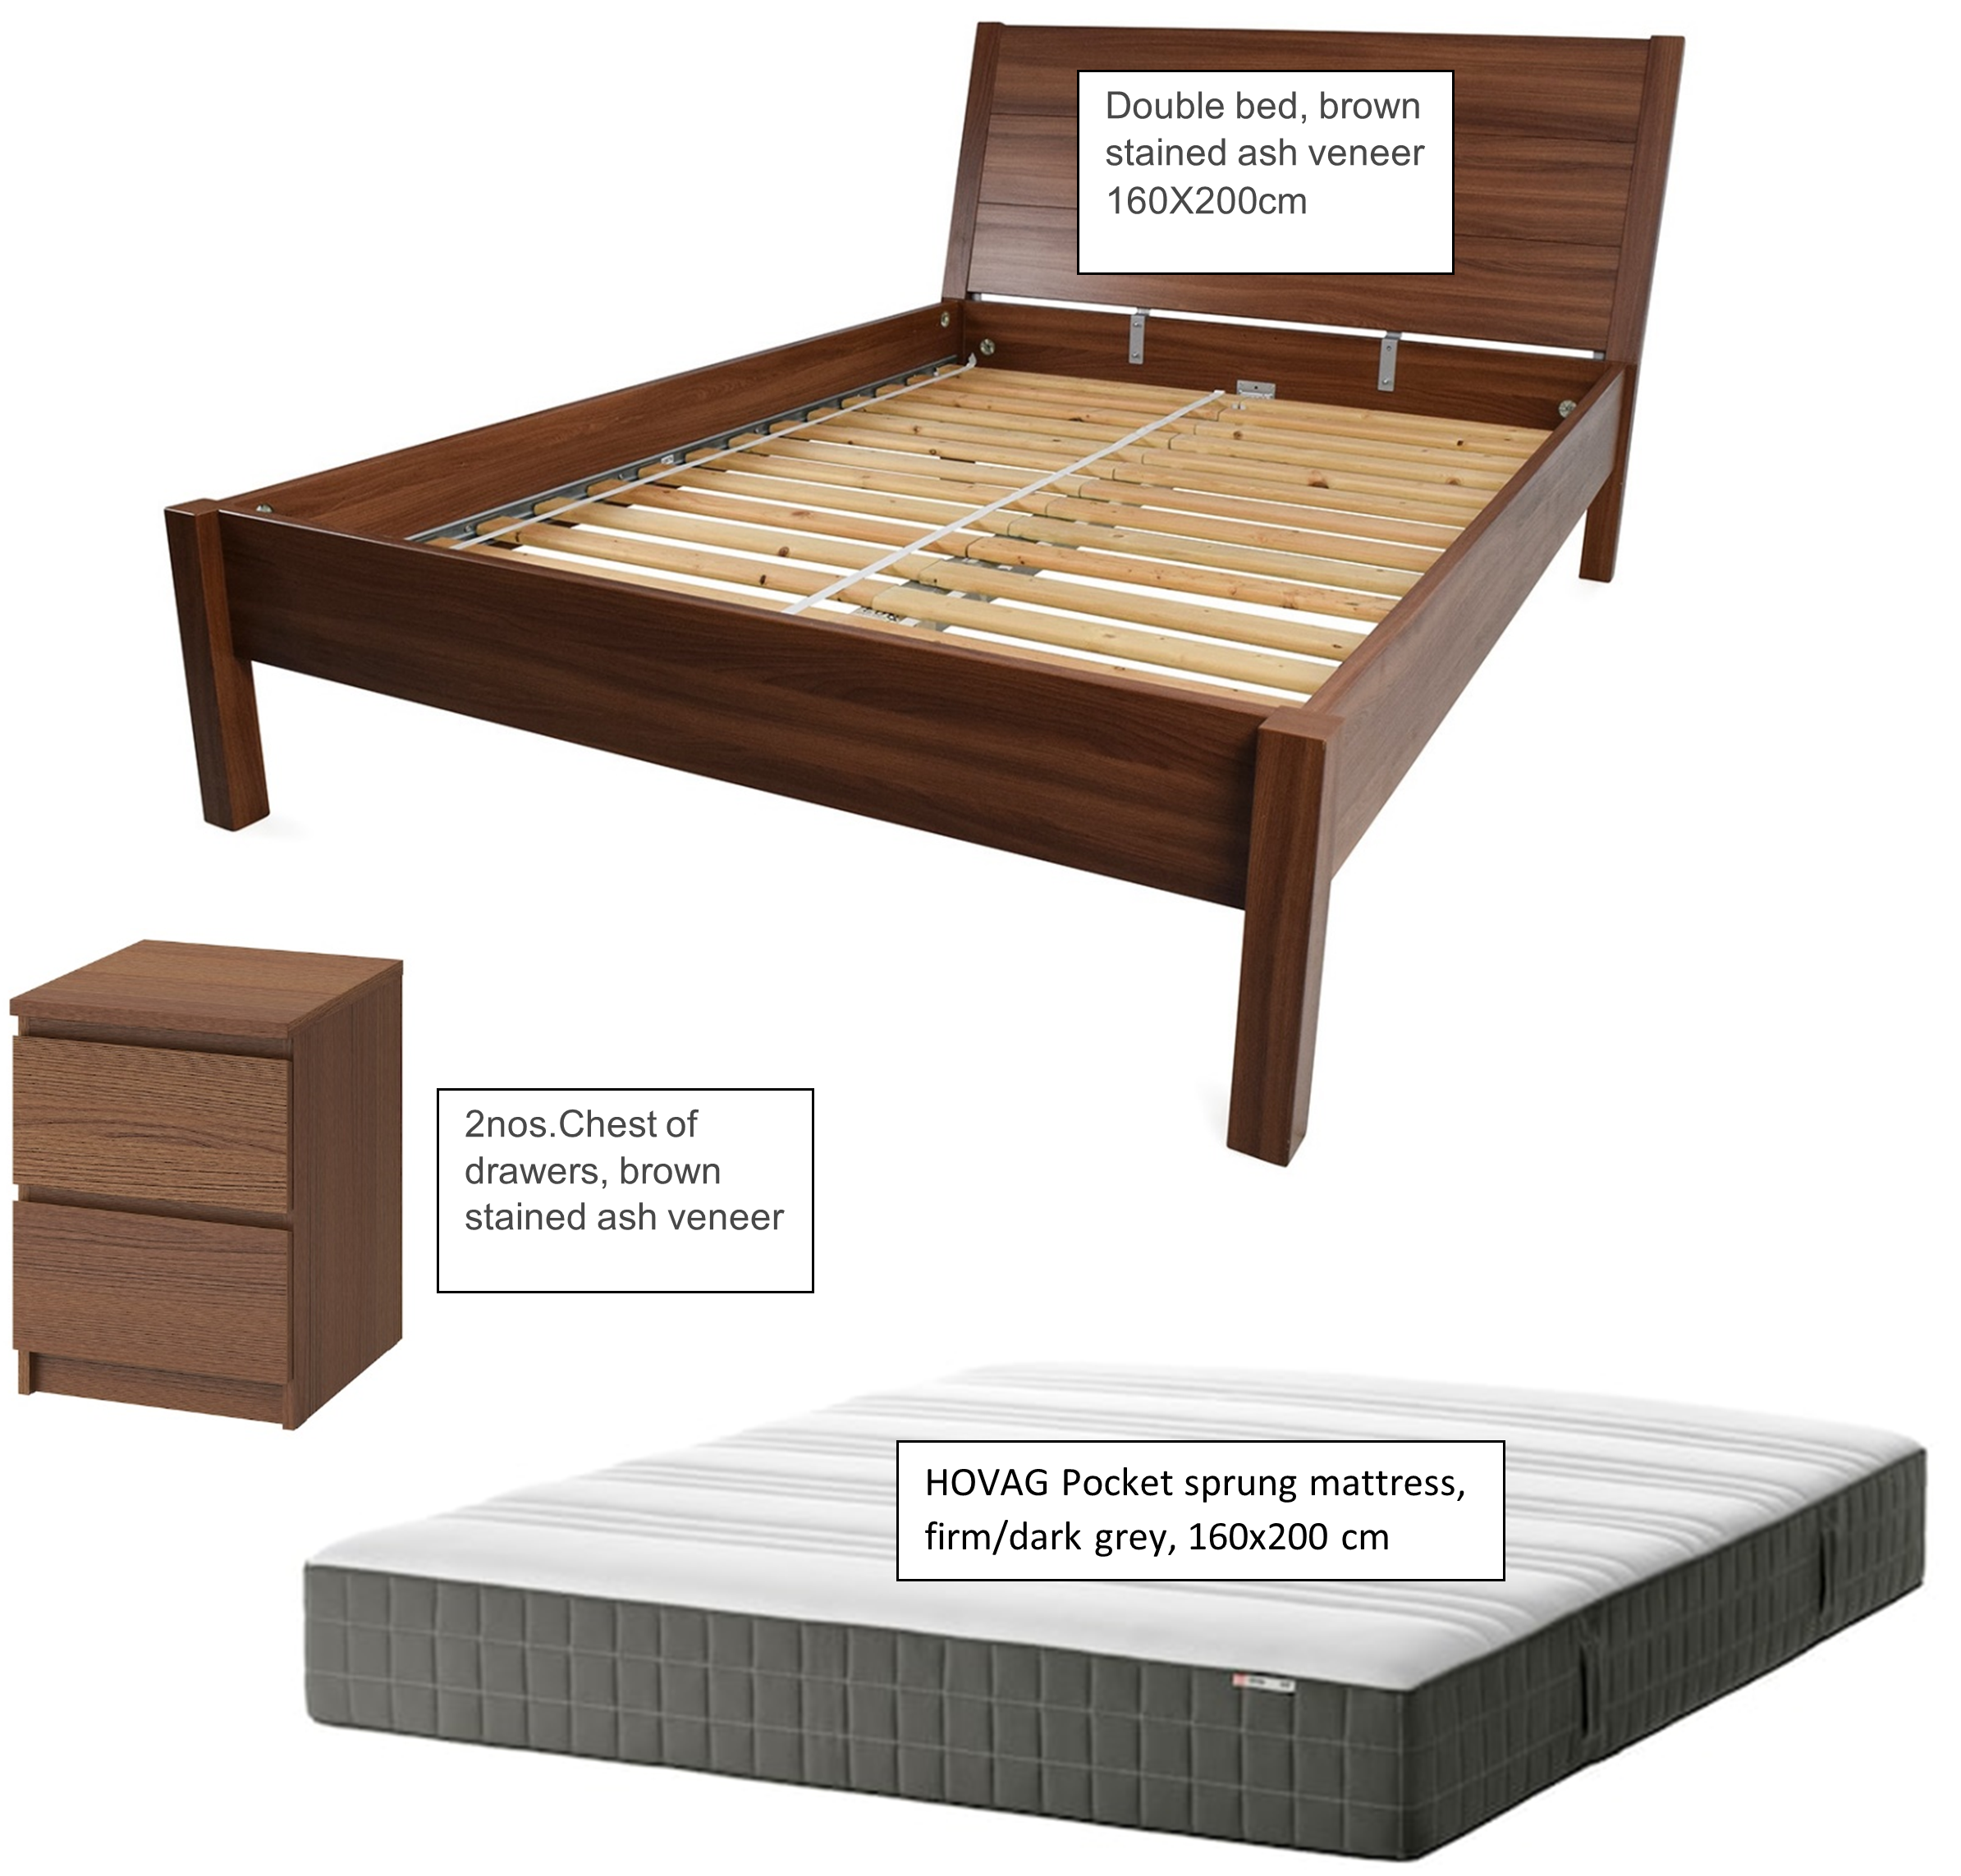 IKEA Bed along with mattress and side tables available in Salmiya